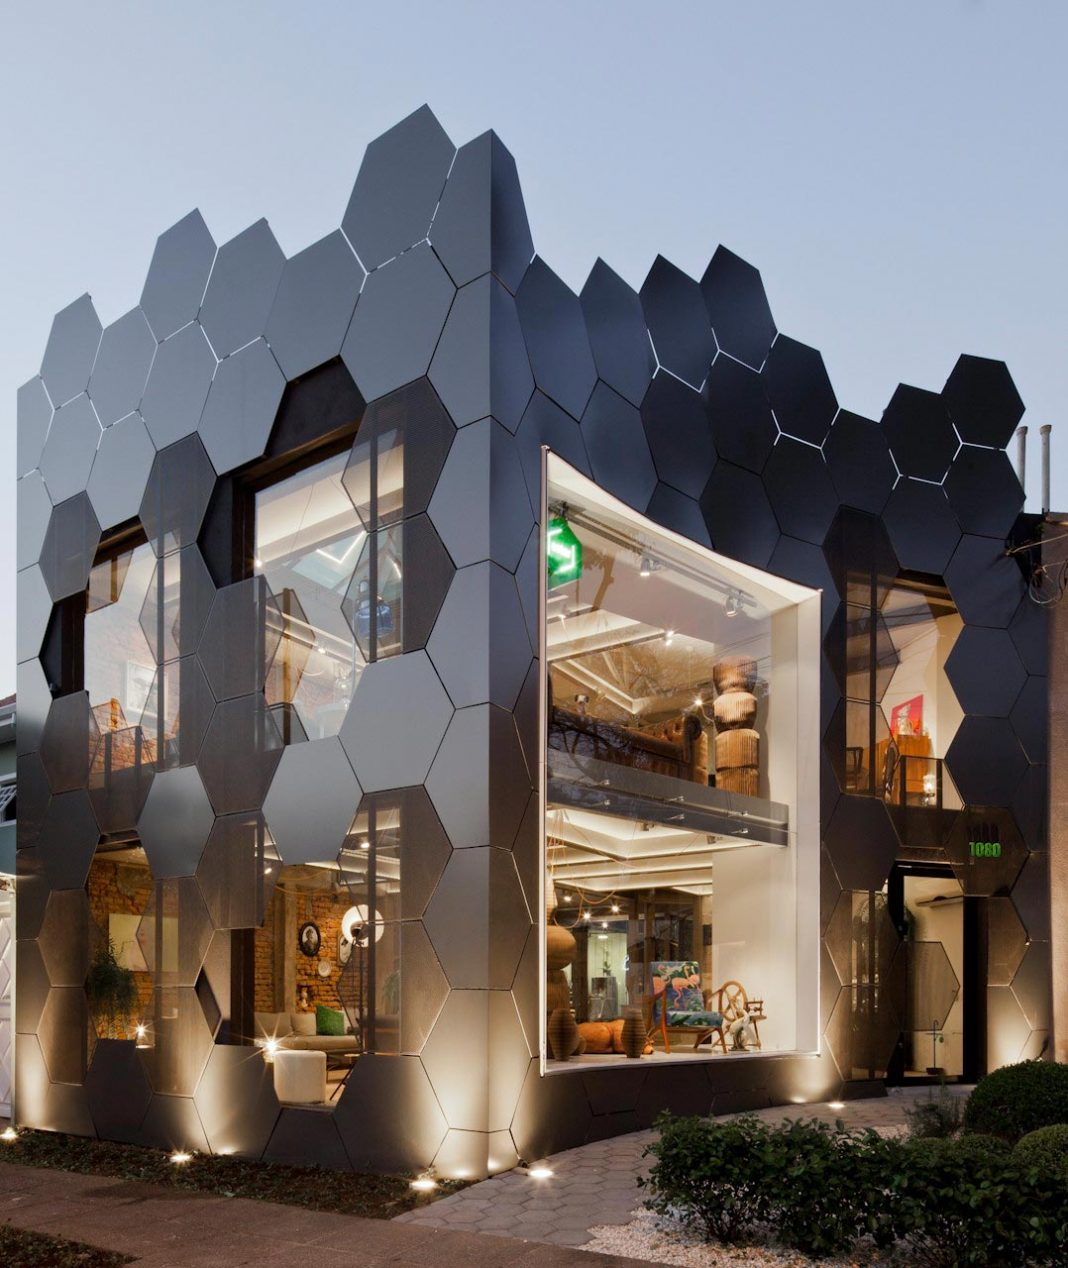 Honeycomb inspired the hexagonal shape on the facade of an furniture store in São Paulo